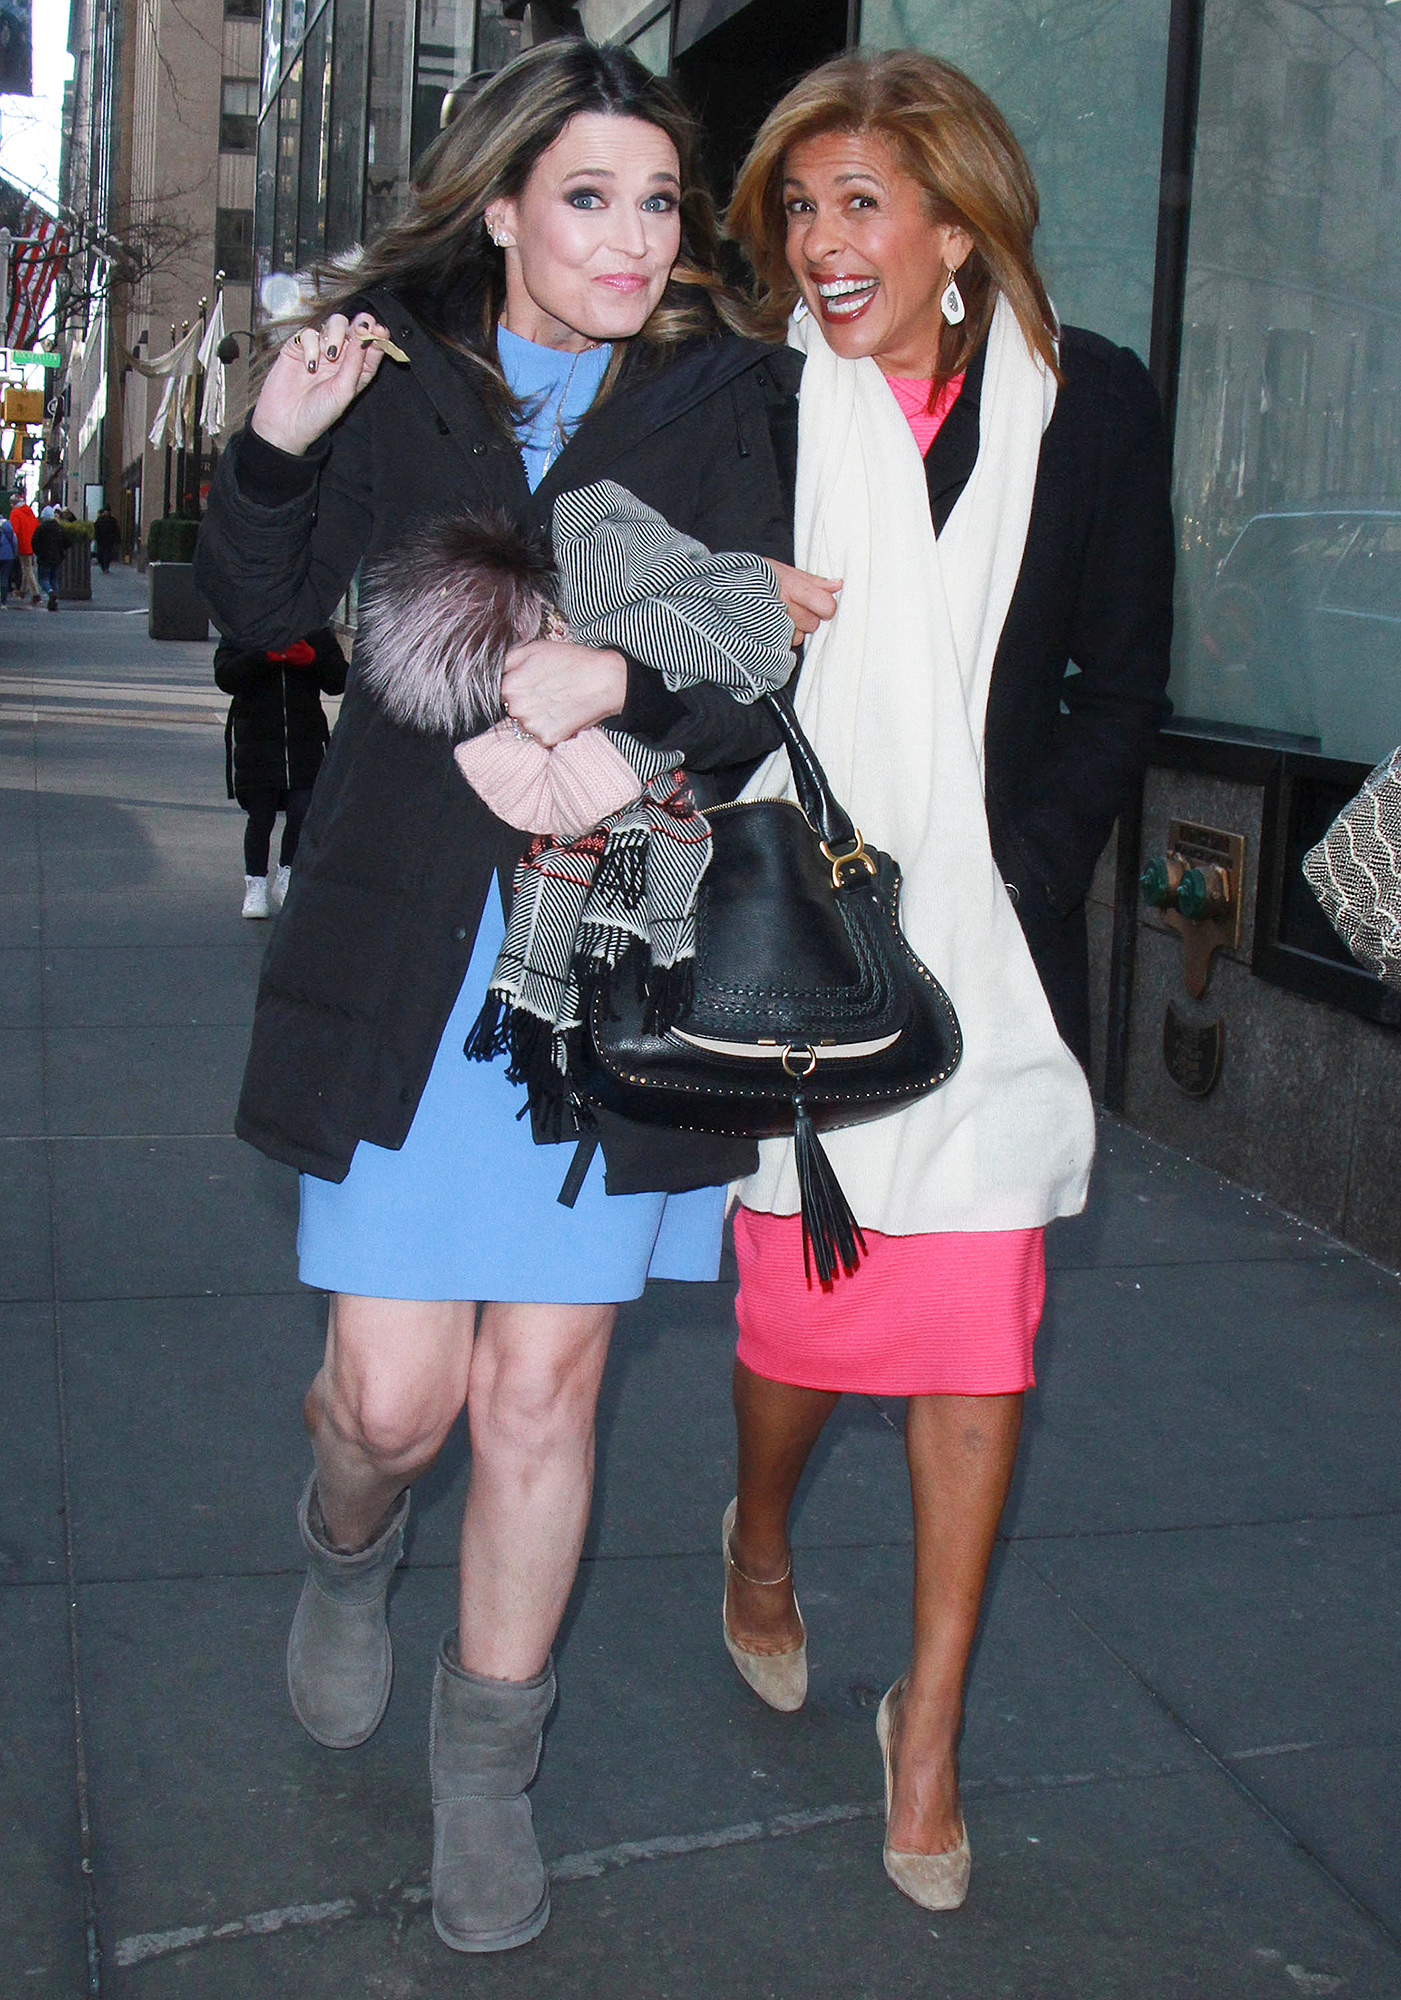 Savannah Guthrie and New Co-Anchor Hoda Kotb Outside of the Today Show